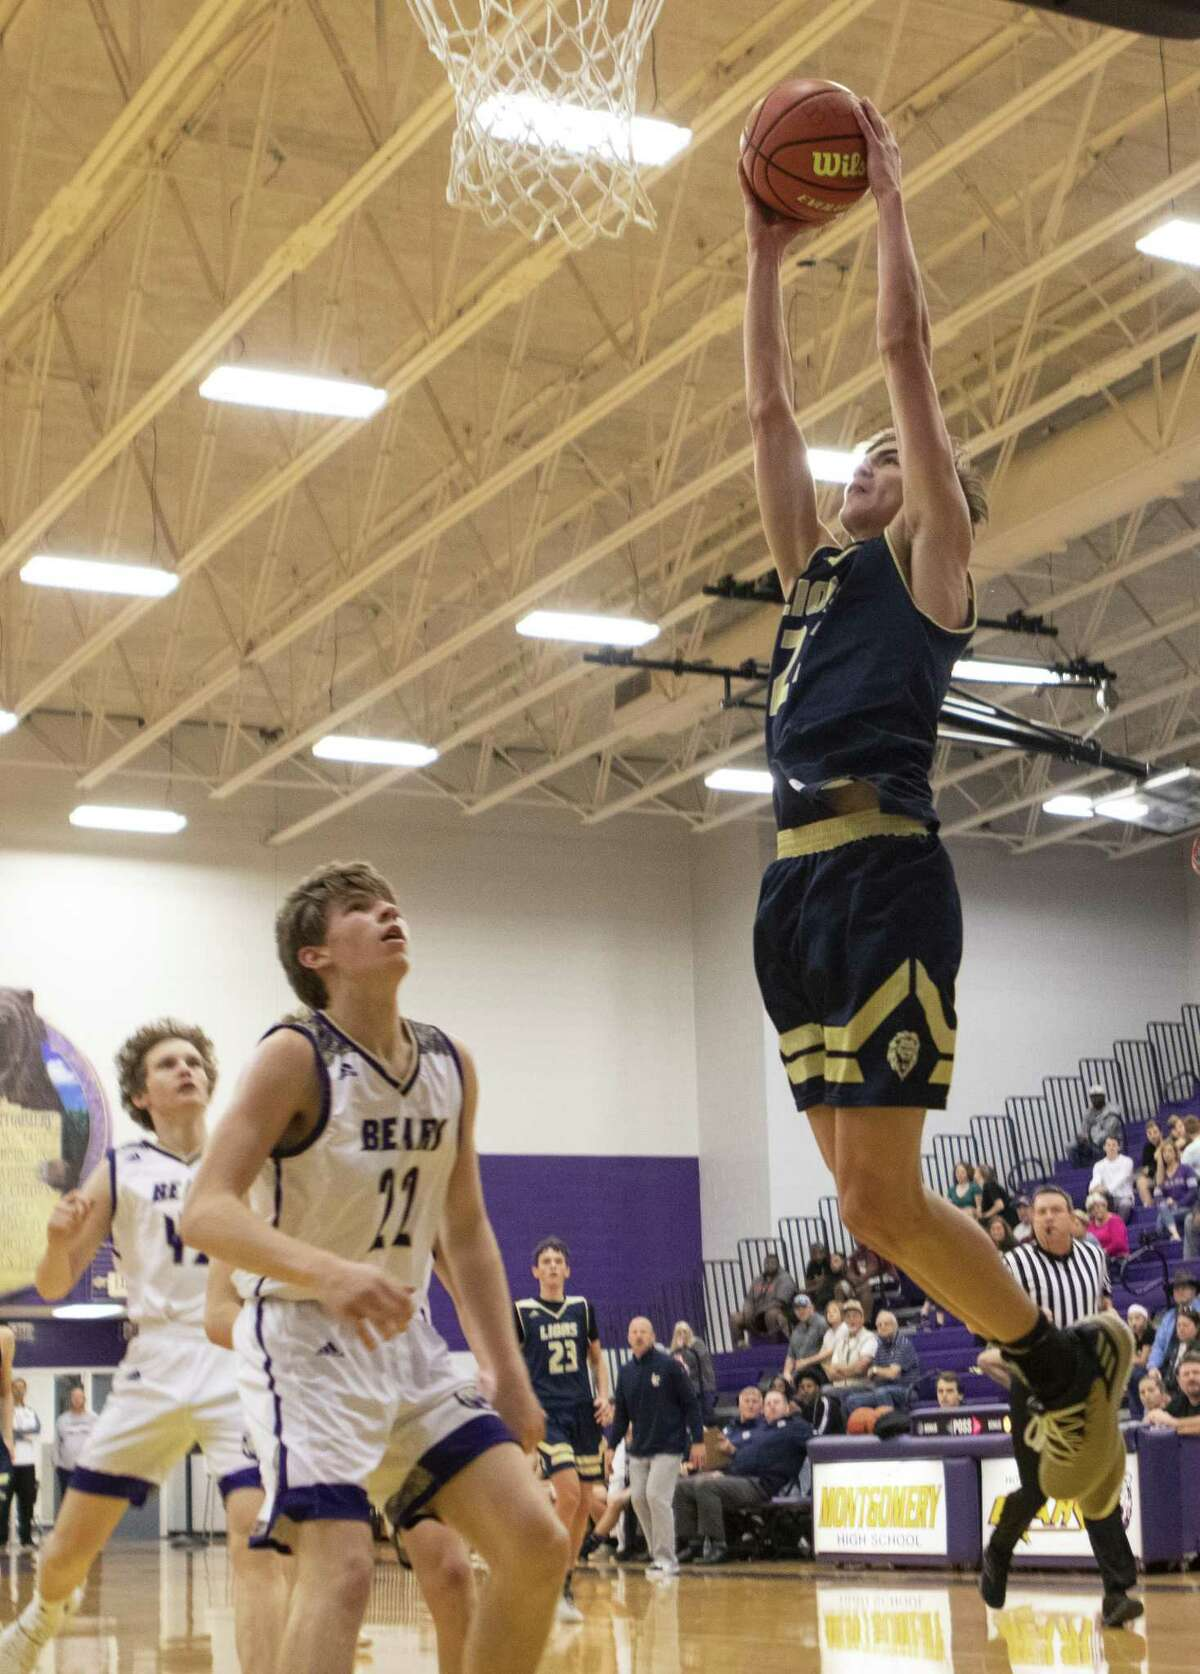 Lake Creek junior Noah Cantu jumps for a two-handed dunk during a District 20-5A high school basketball game Saturday, Jan. 5, 2019 at Montgomery High School in Montgomery.